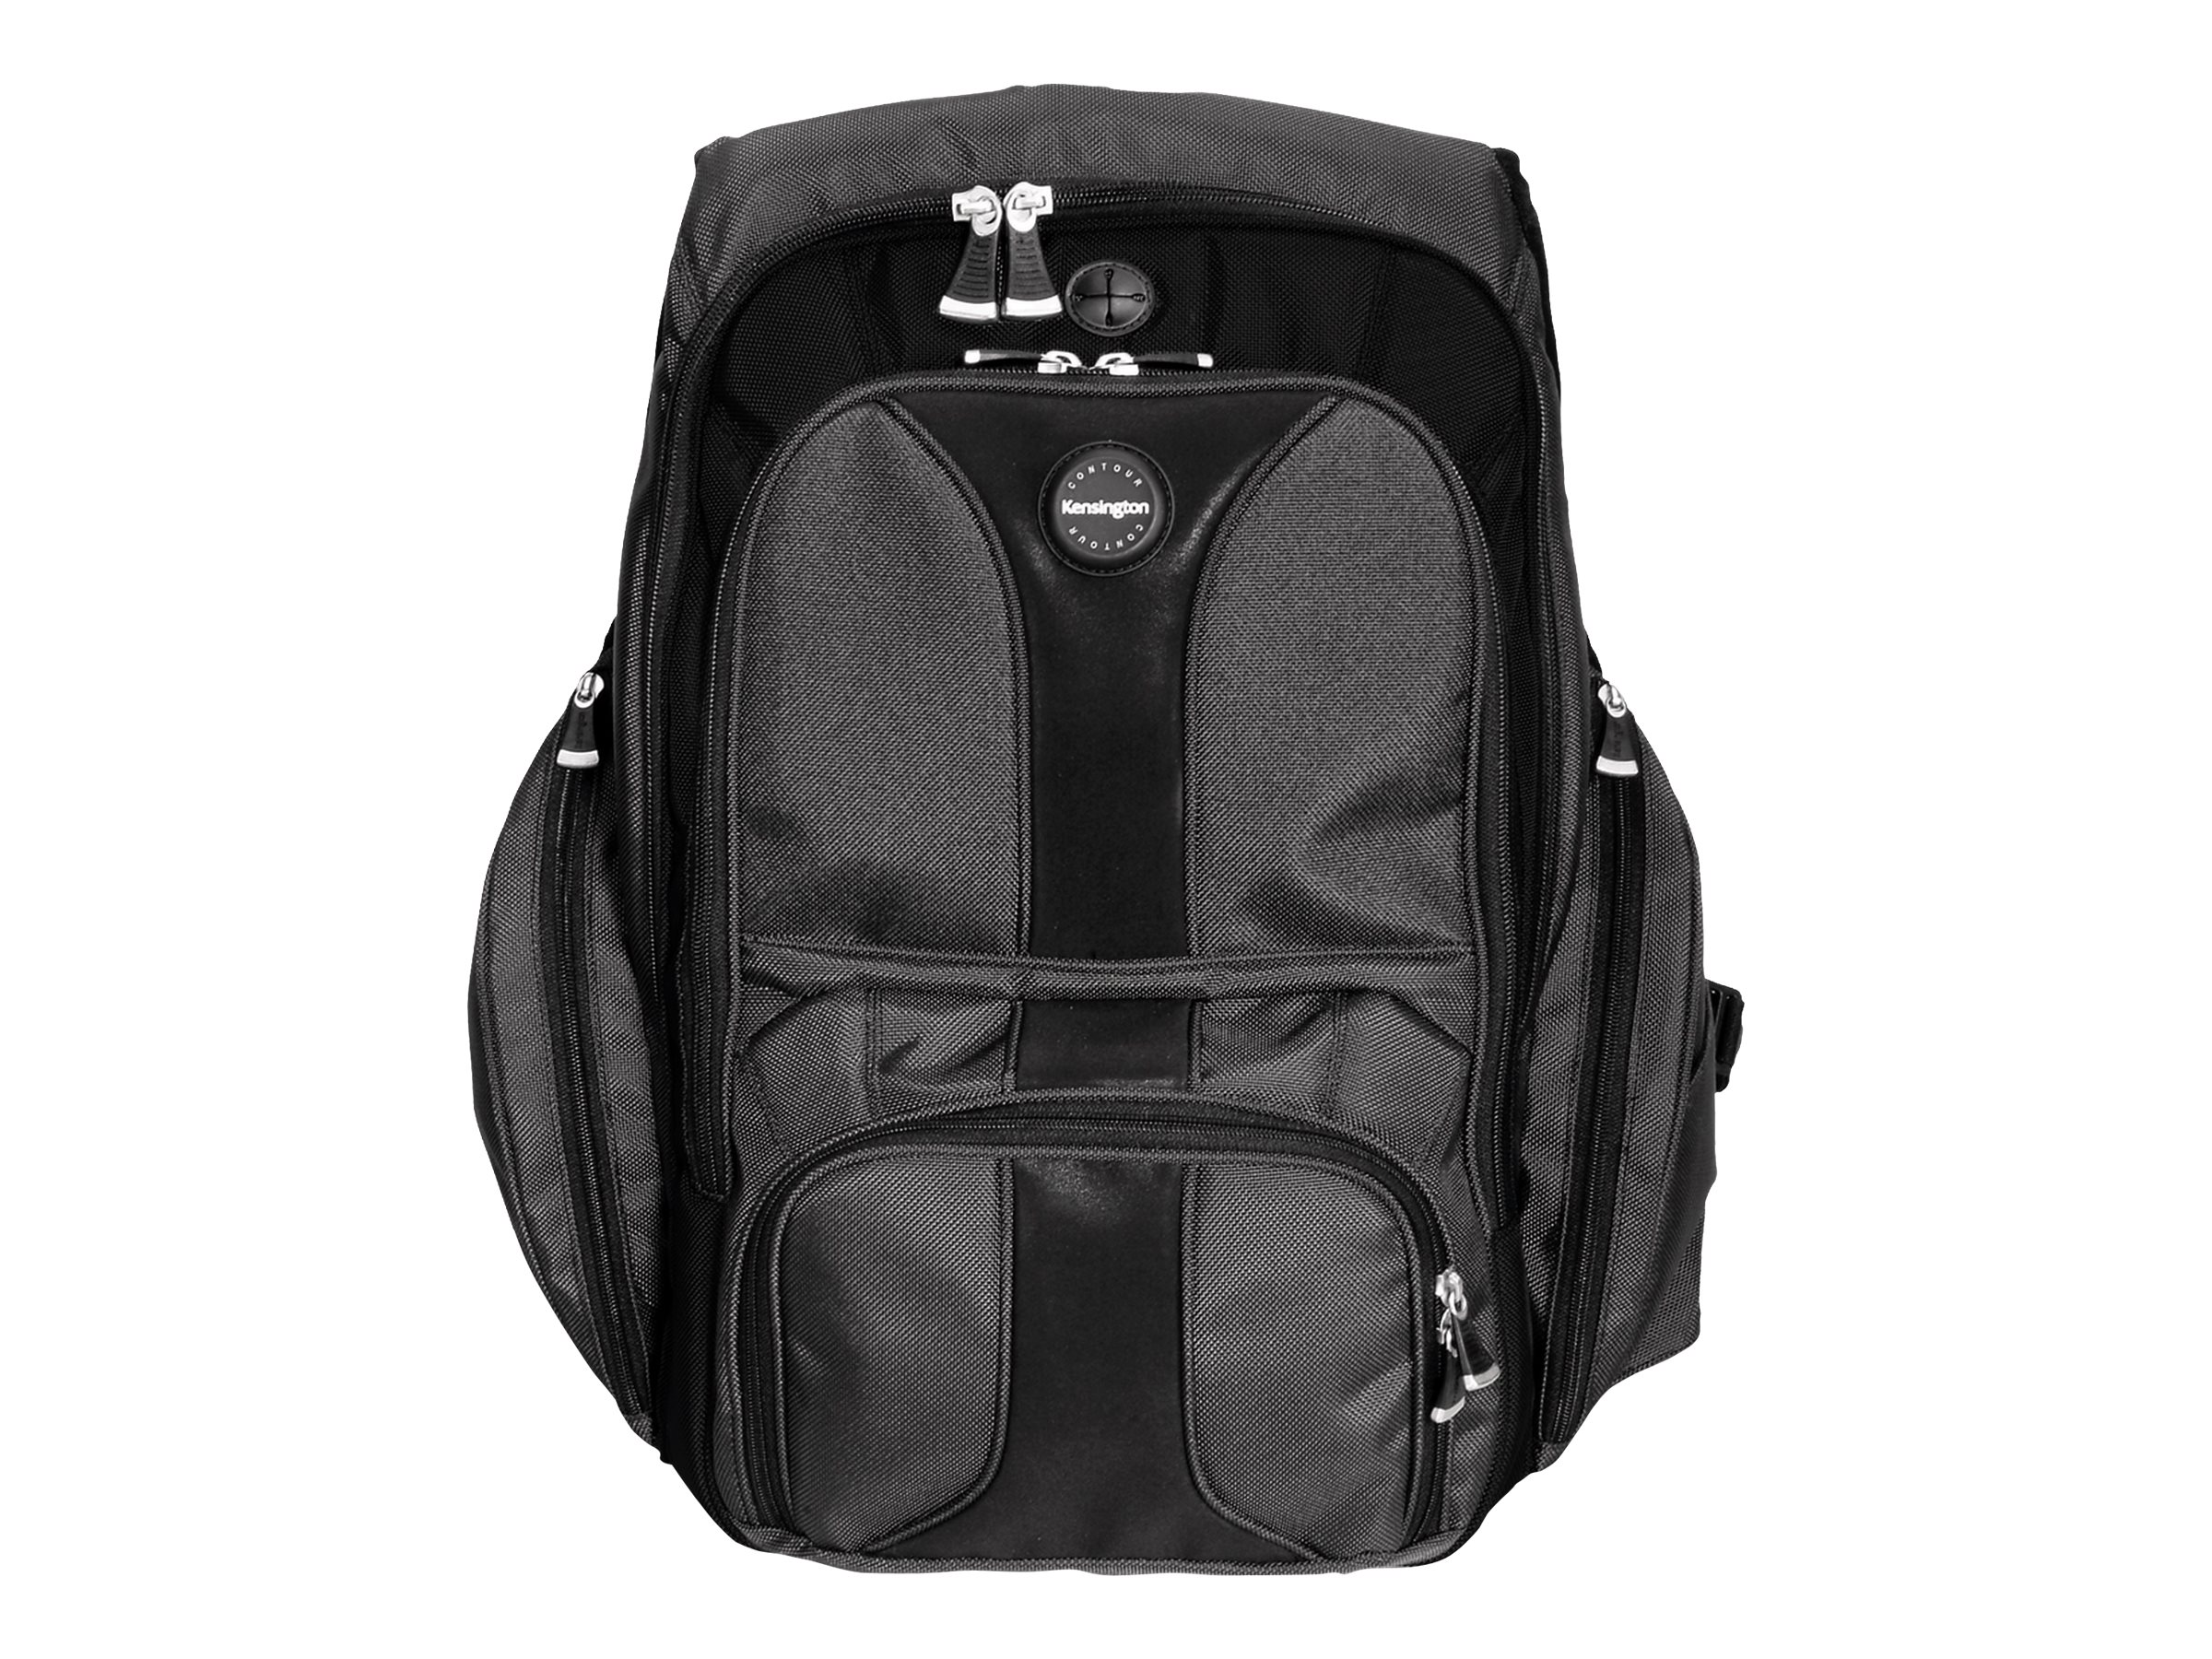 Kensington Contour Notebook Backpack with Adjustable Lumbar Support